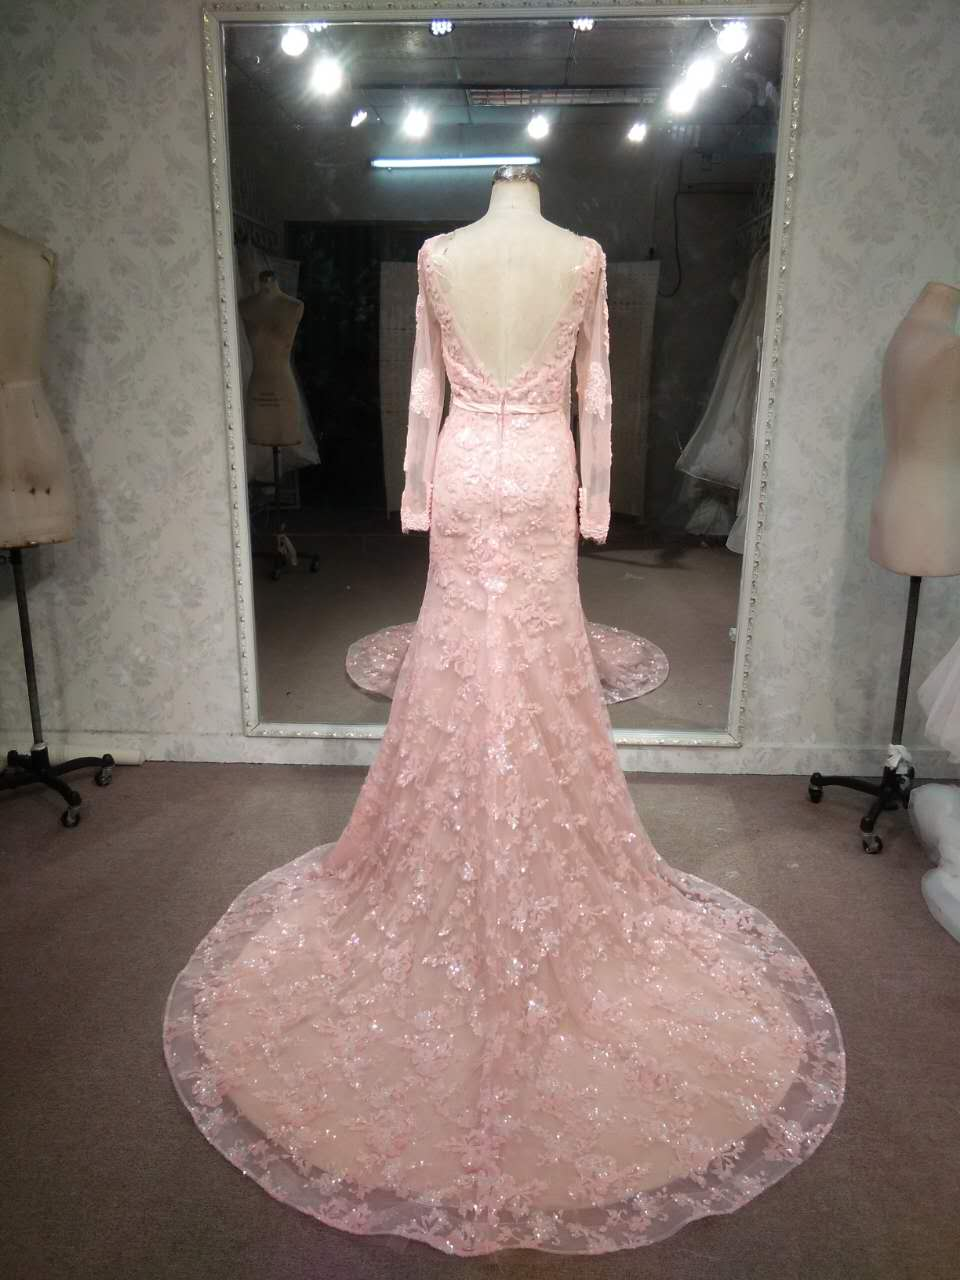 Long sleeve pink lace wedding gowns by Darius